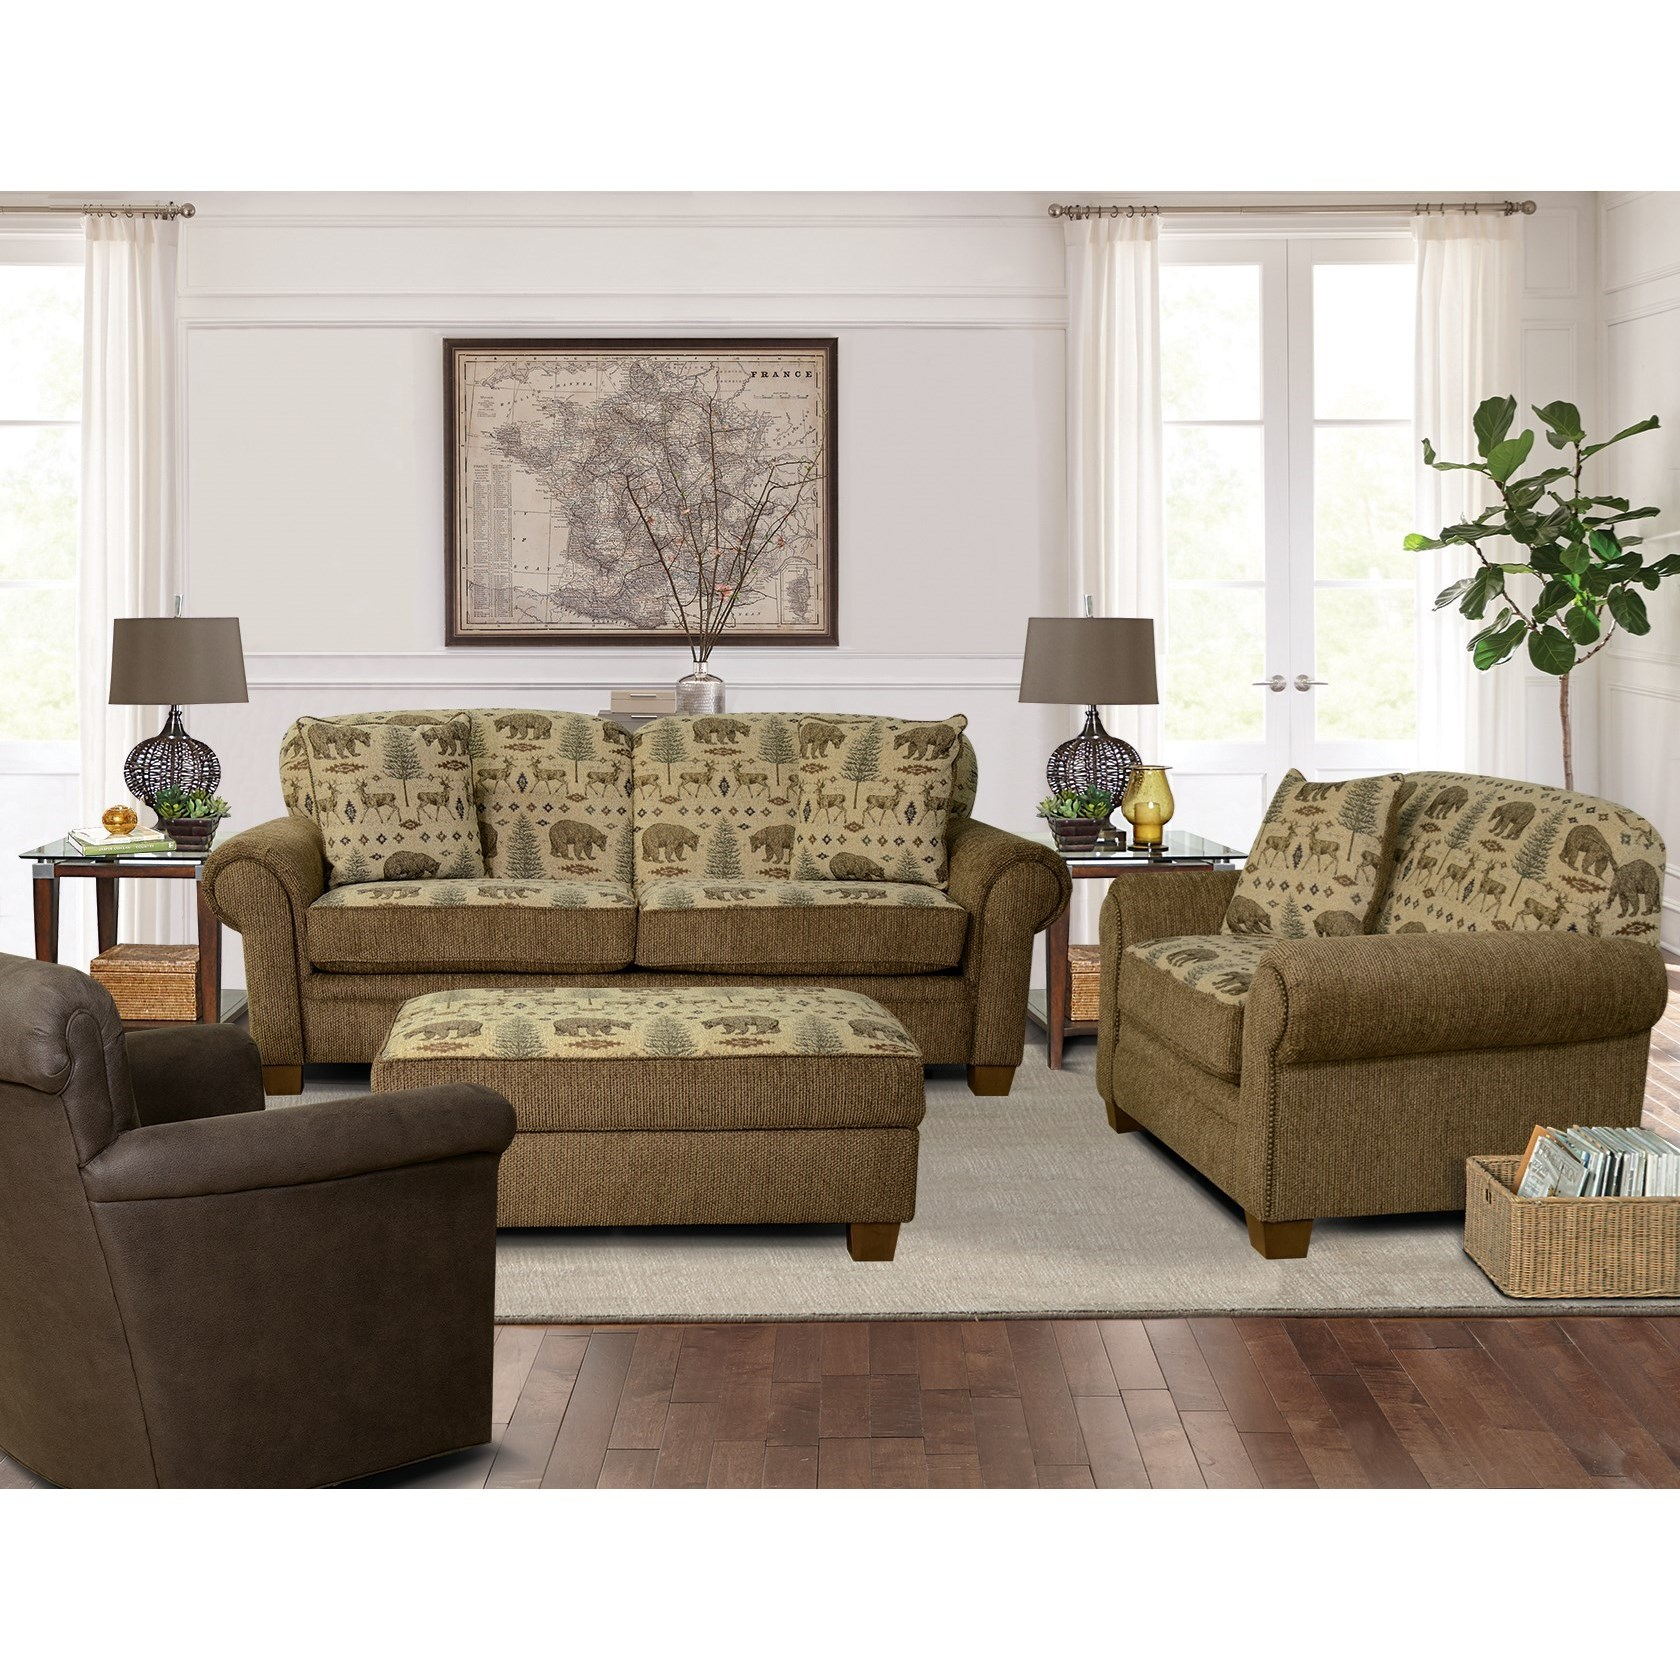 England edgar stationary living room group coconis for Living room furniture groups